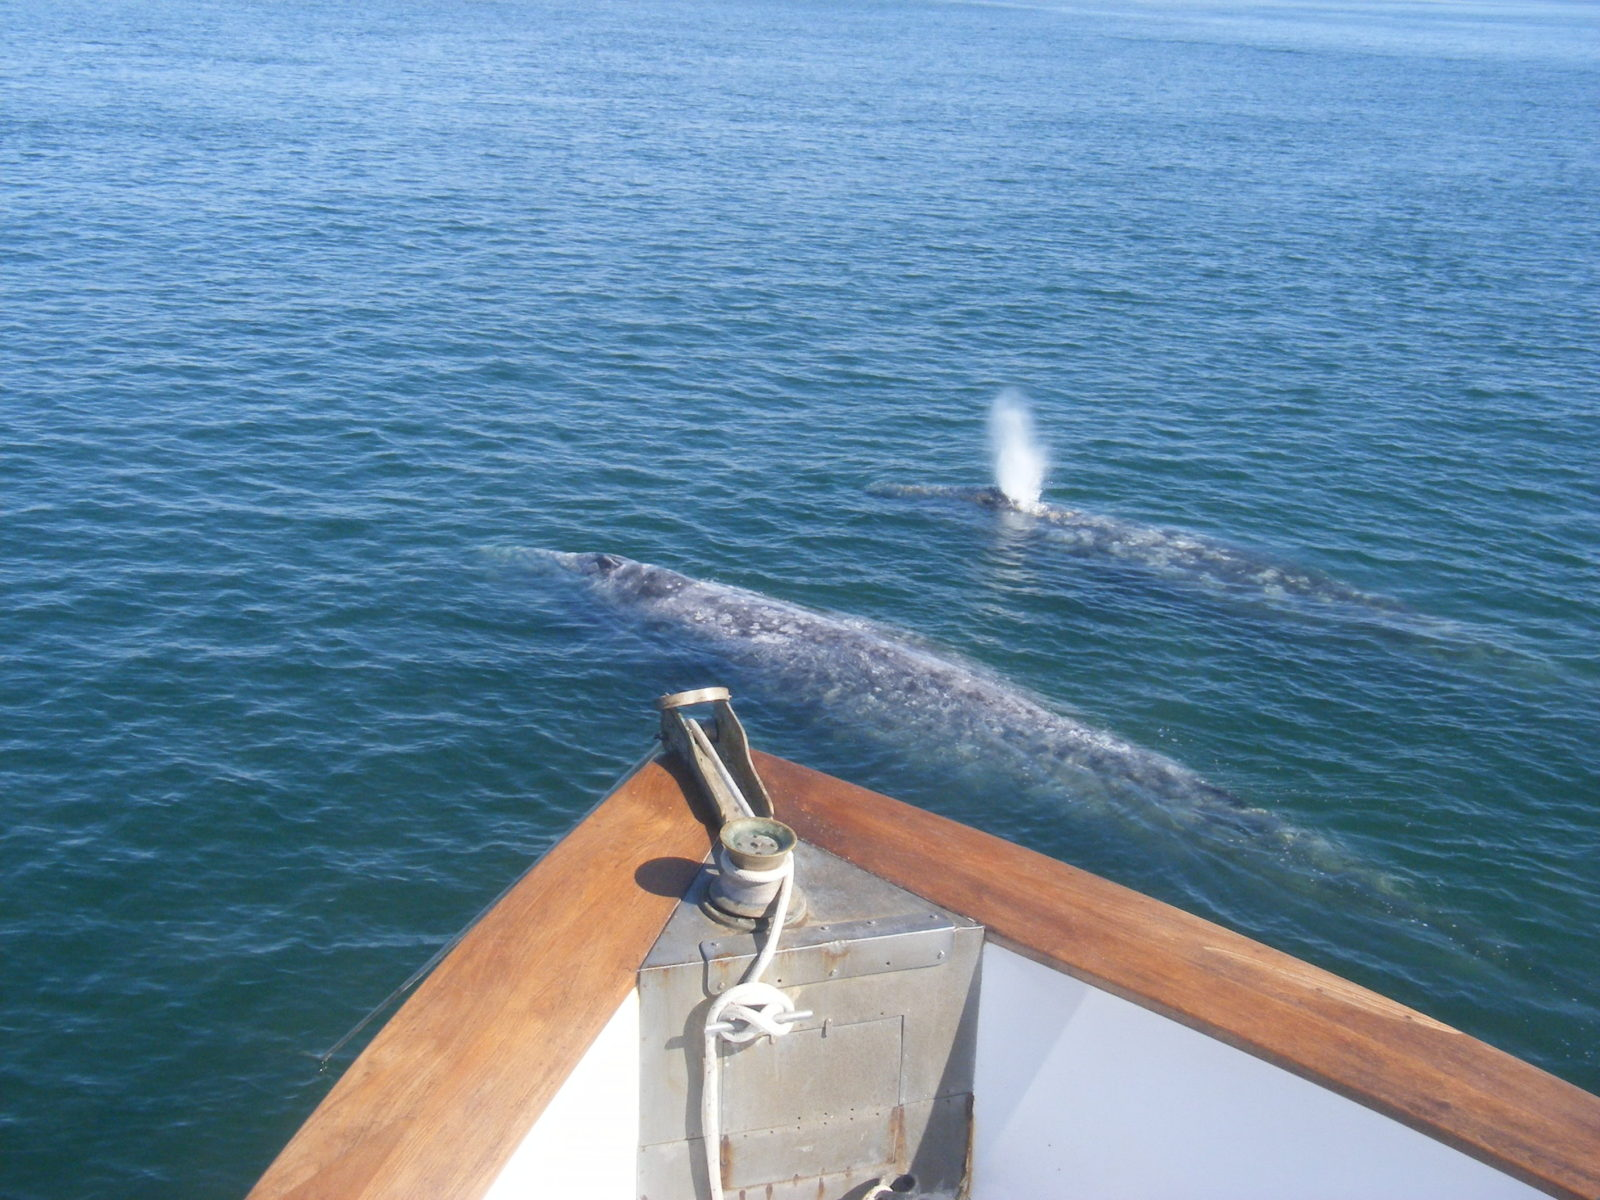 Counts of northbound gray whale cow/calf pairs are high!